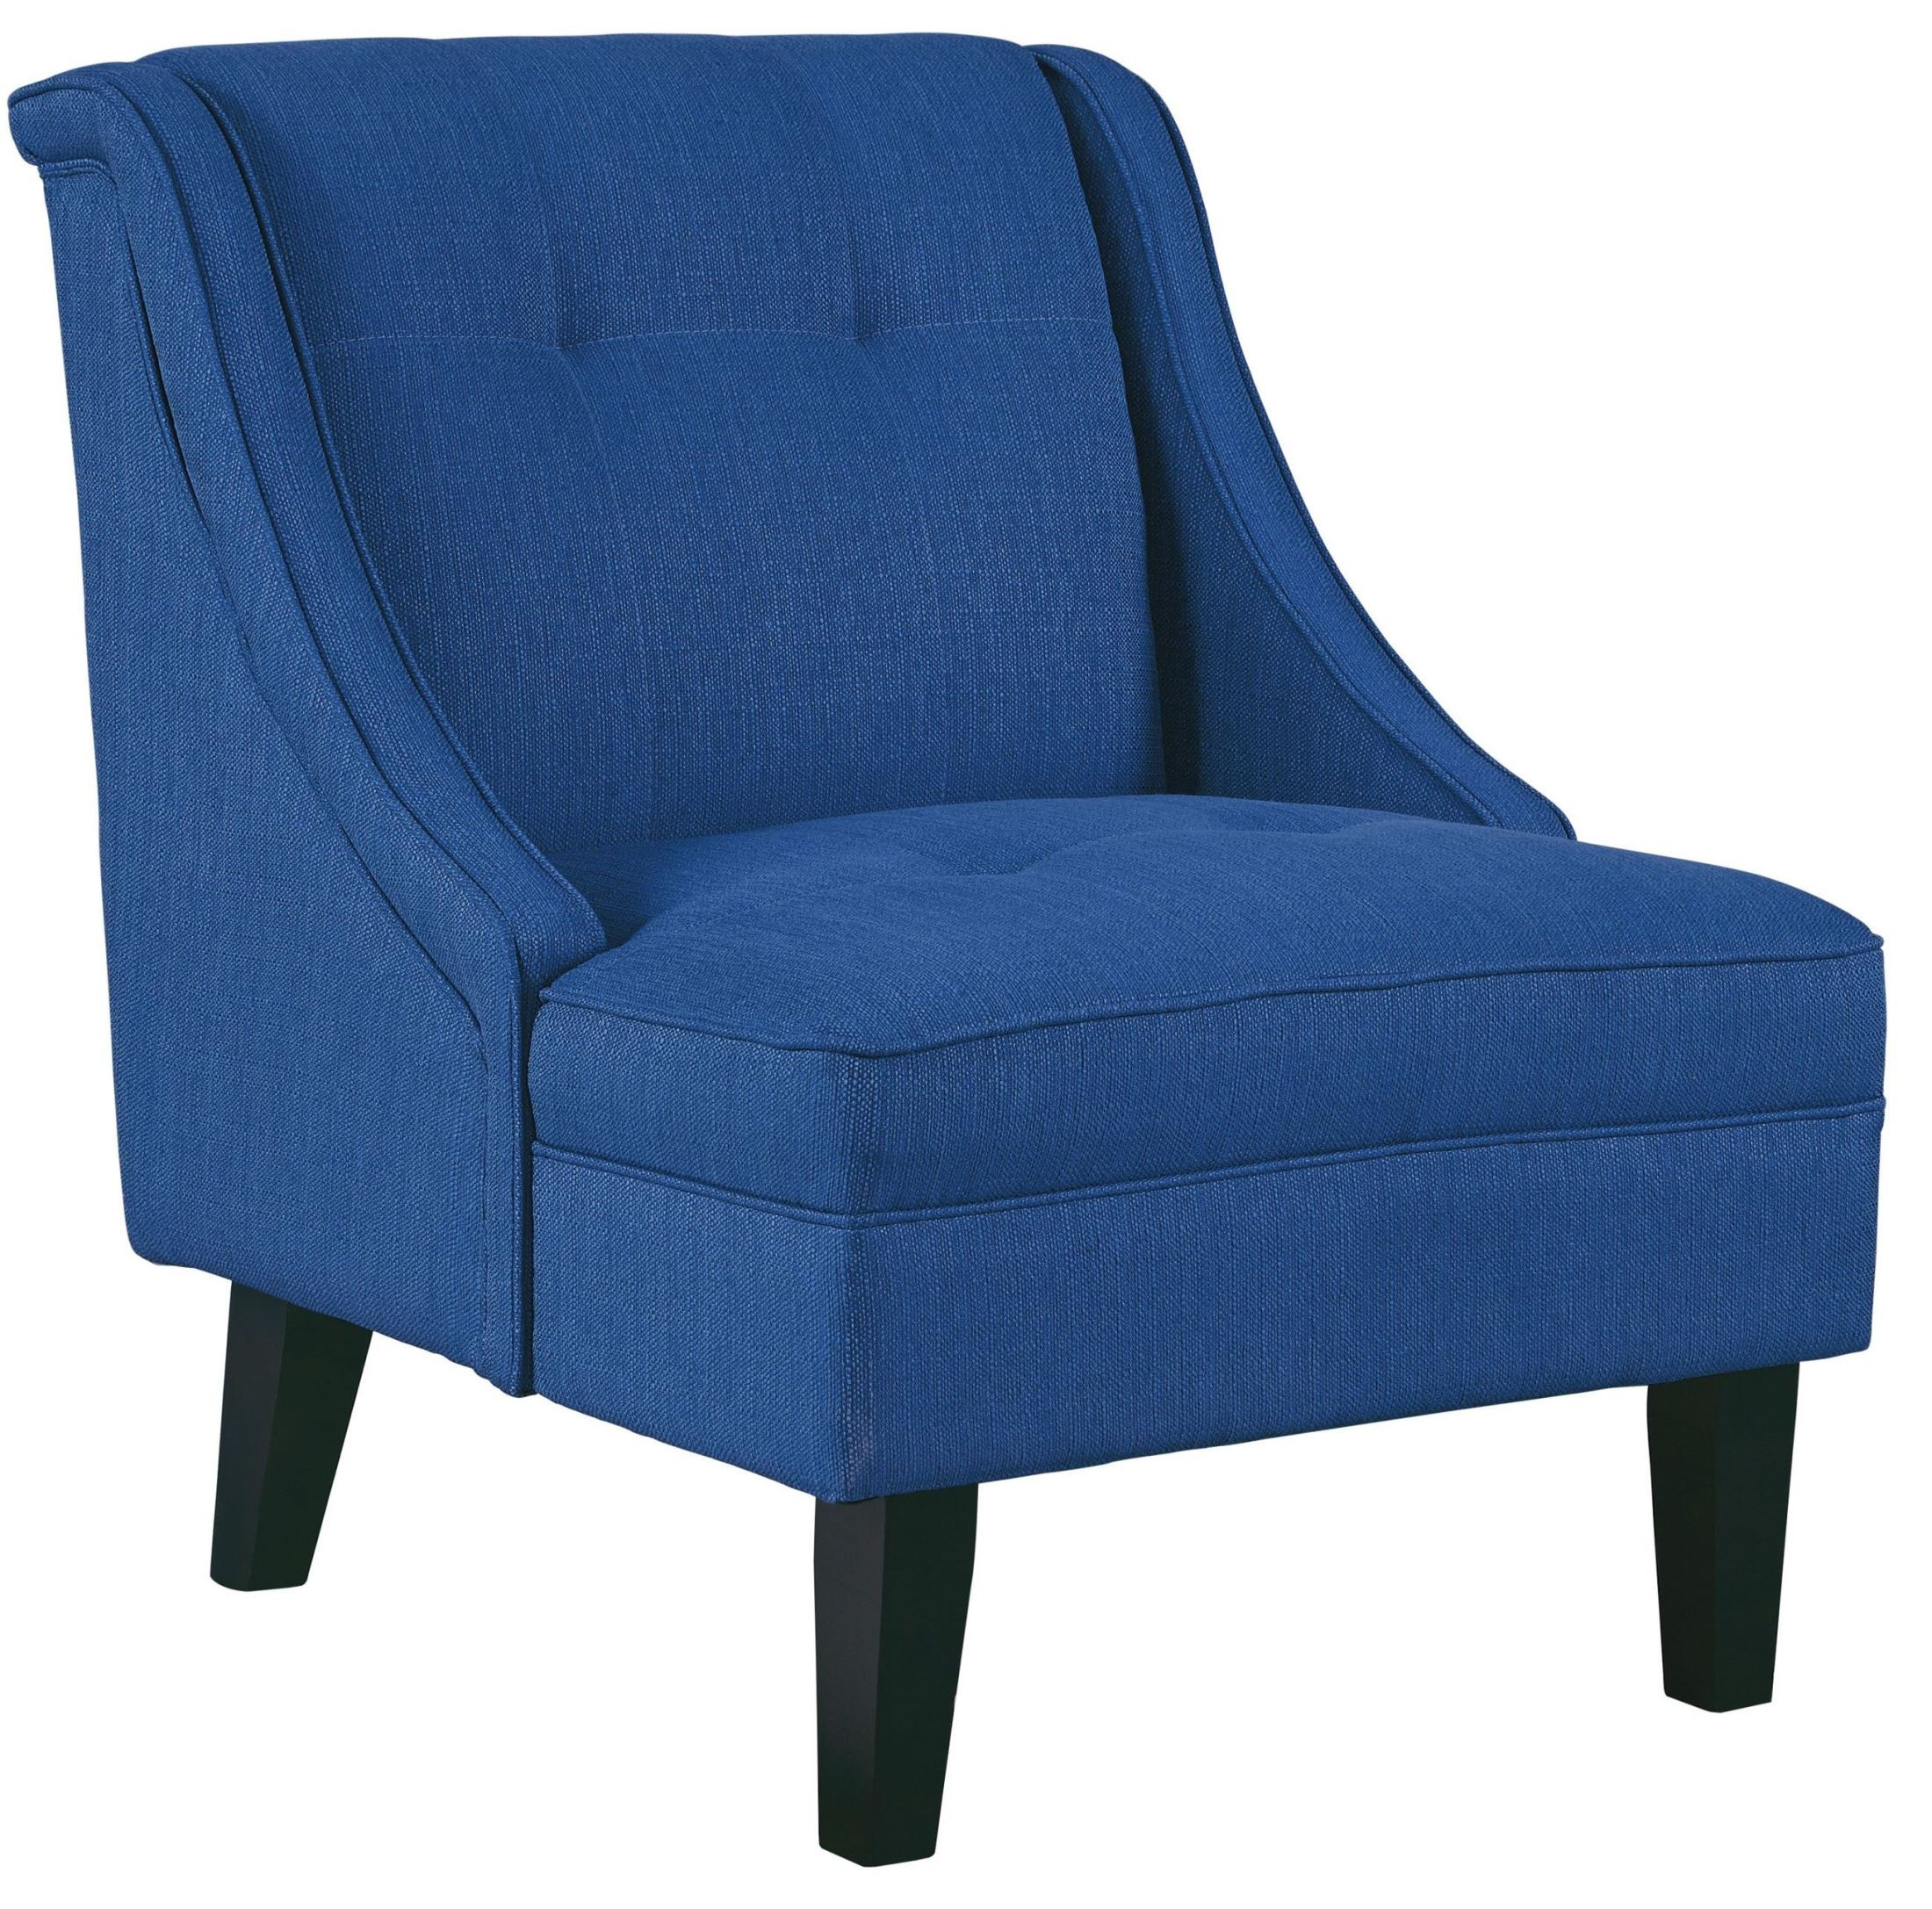 Blue Accent Chair: Clarinda Blue Accent Chair From Ashley (3623260)